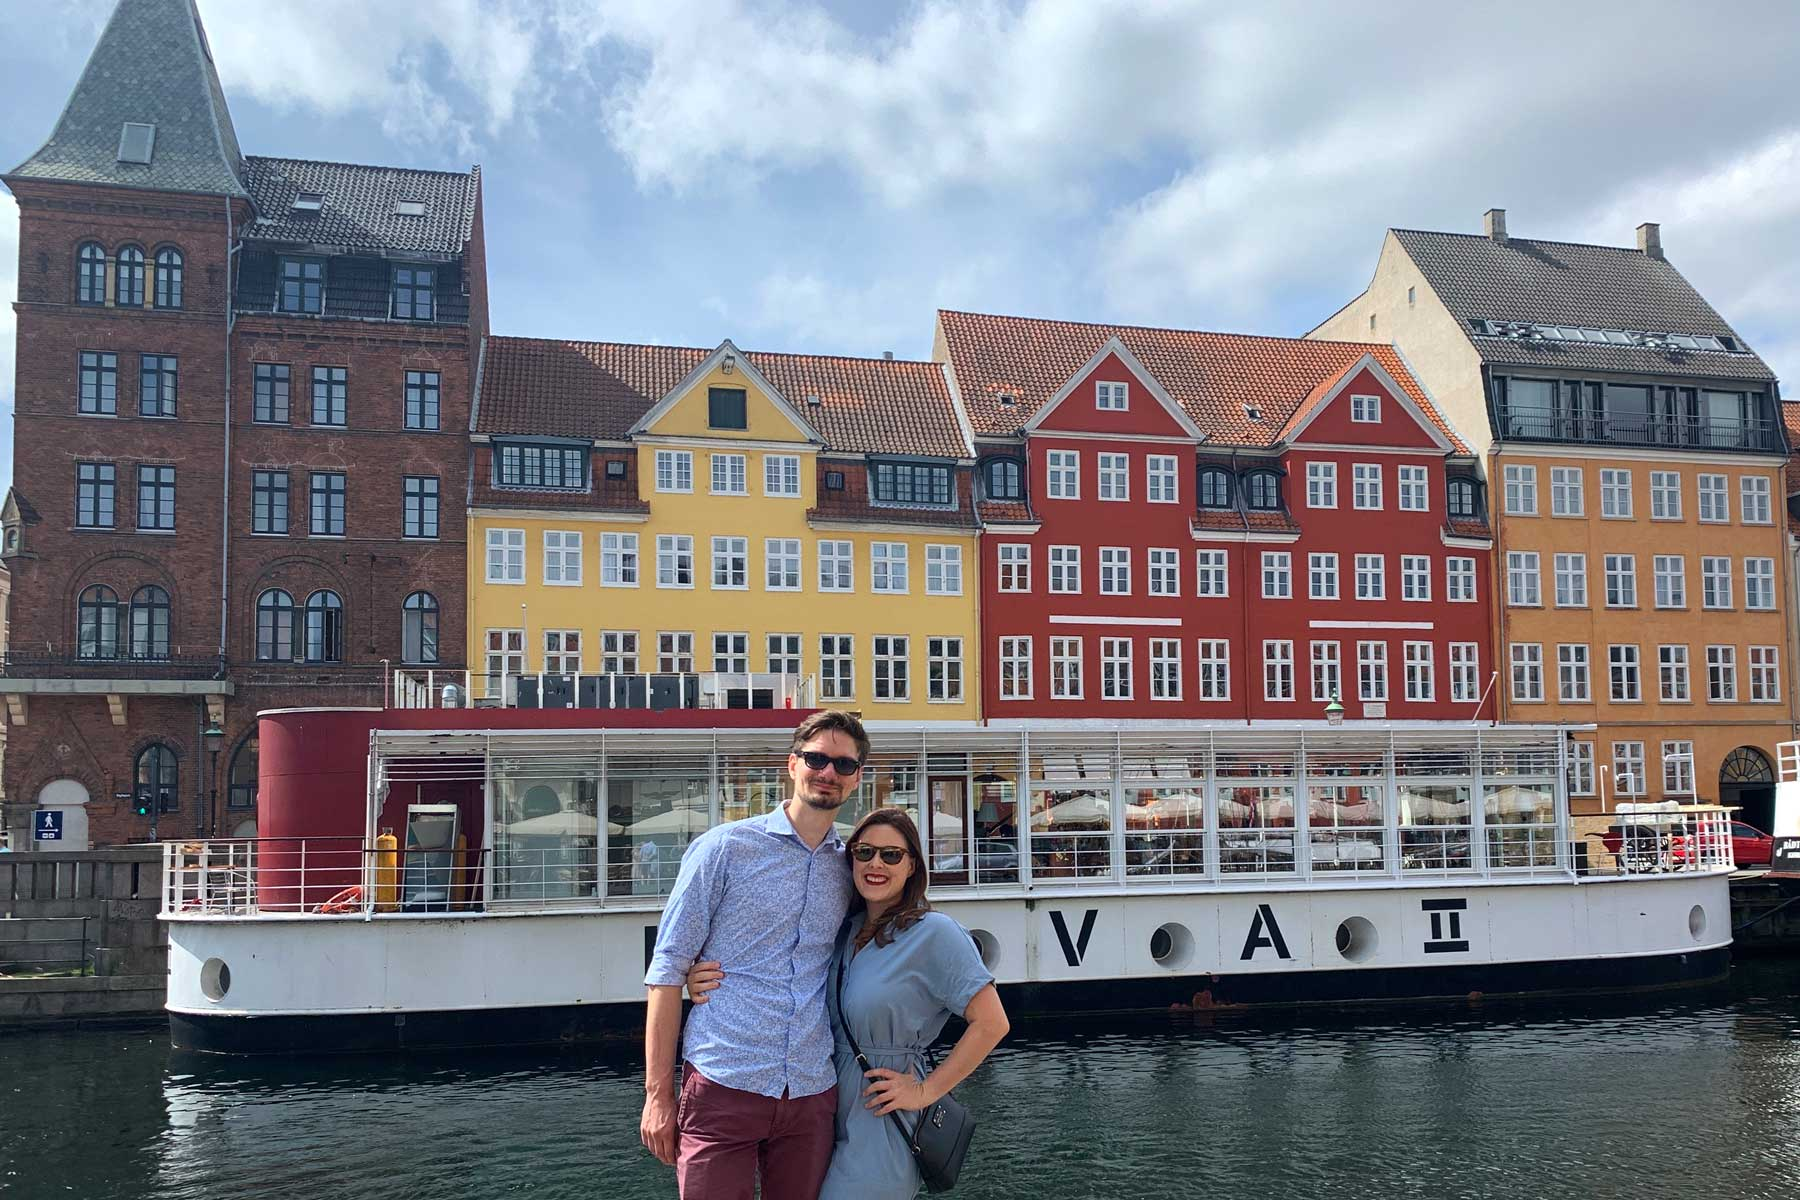 Copenhagen, Denmark being empty of tourists during the pandemic